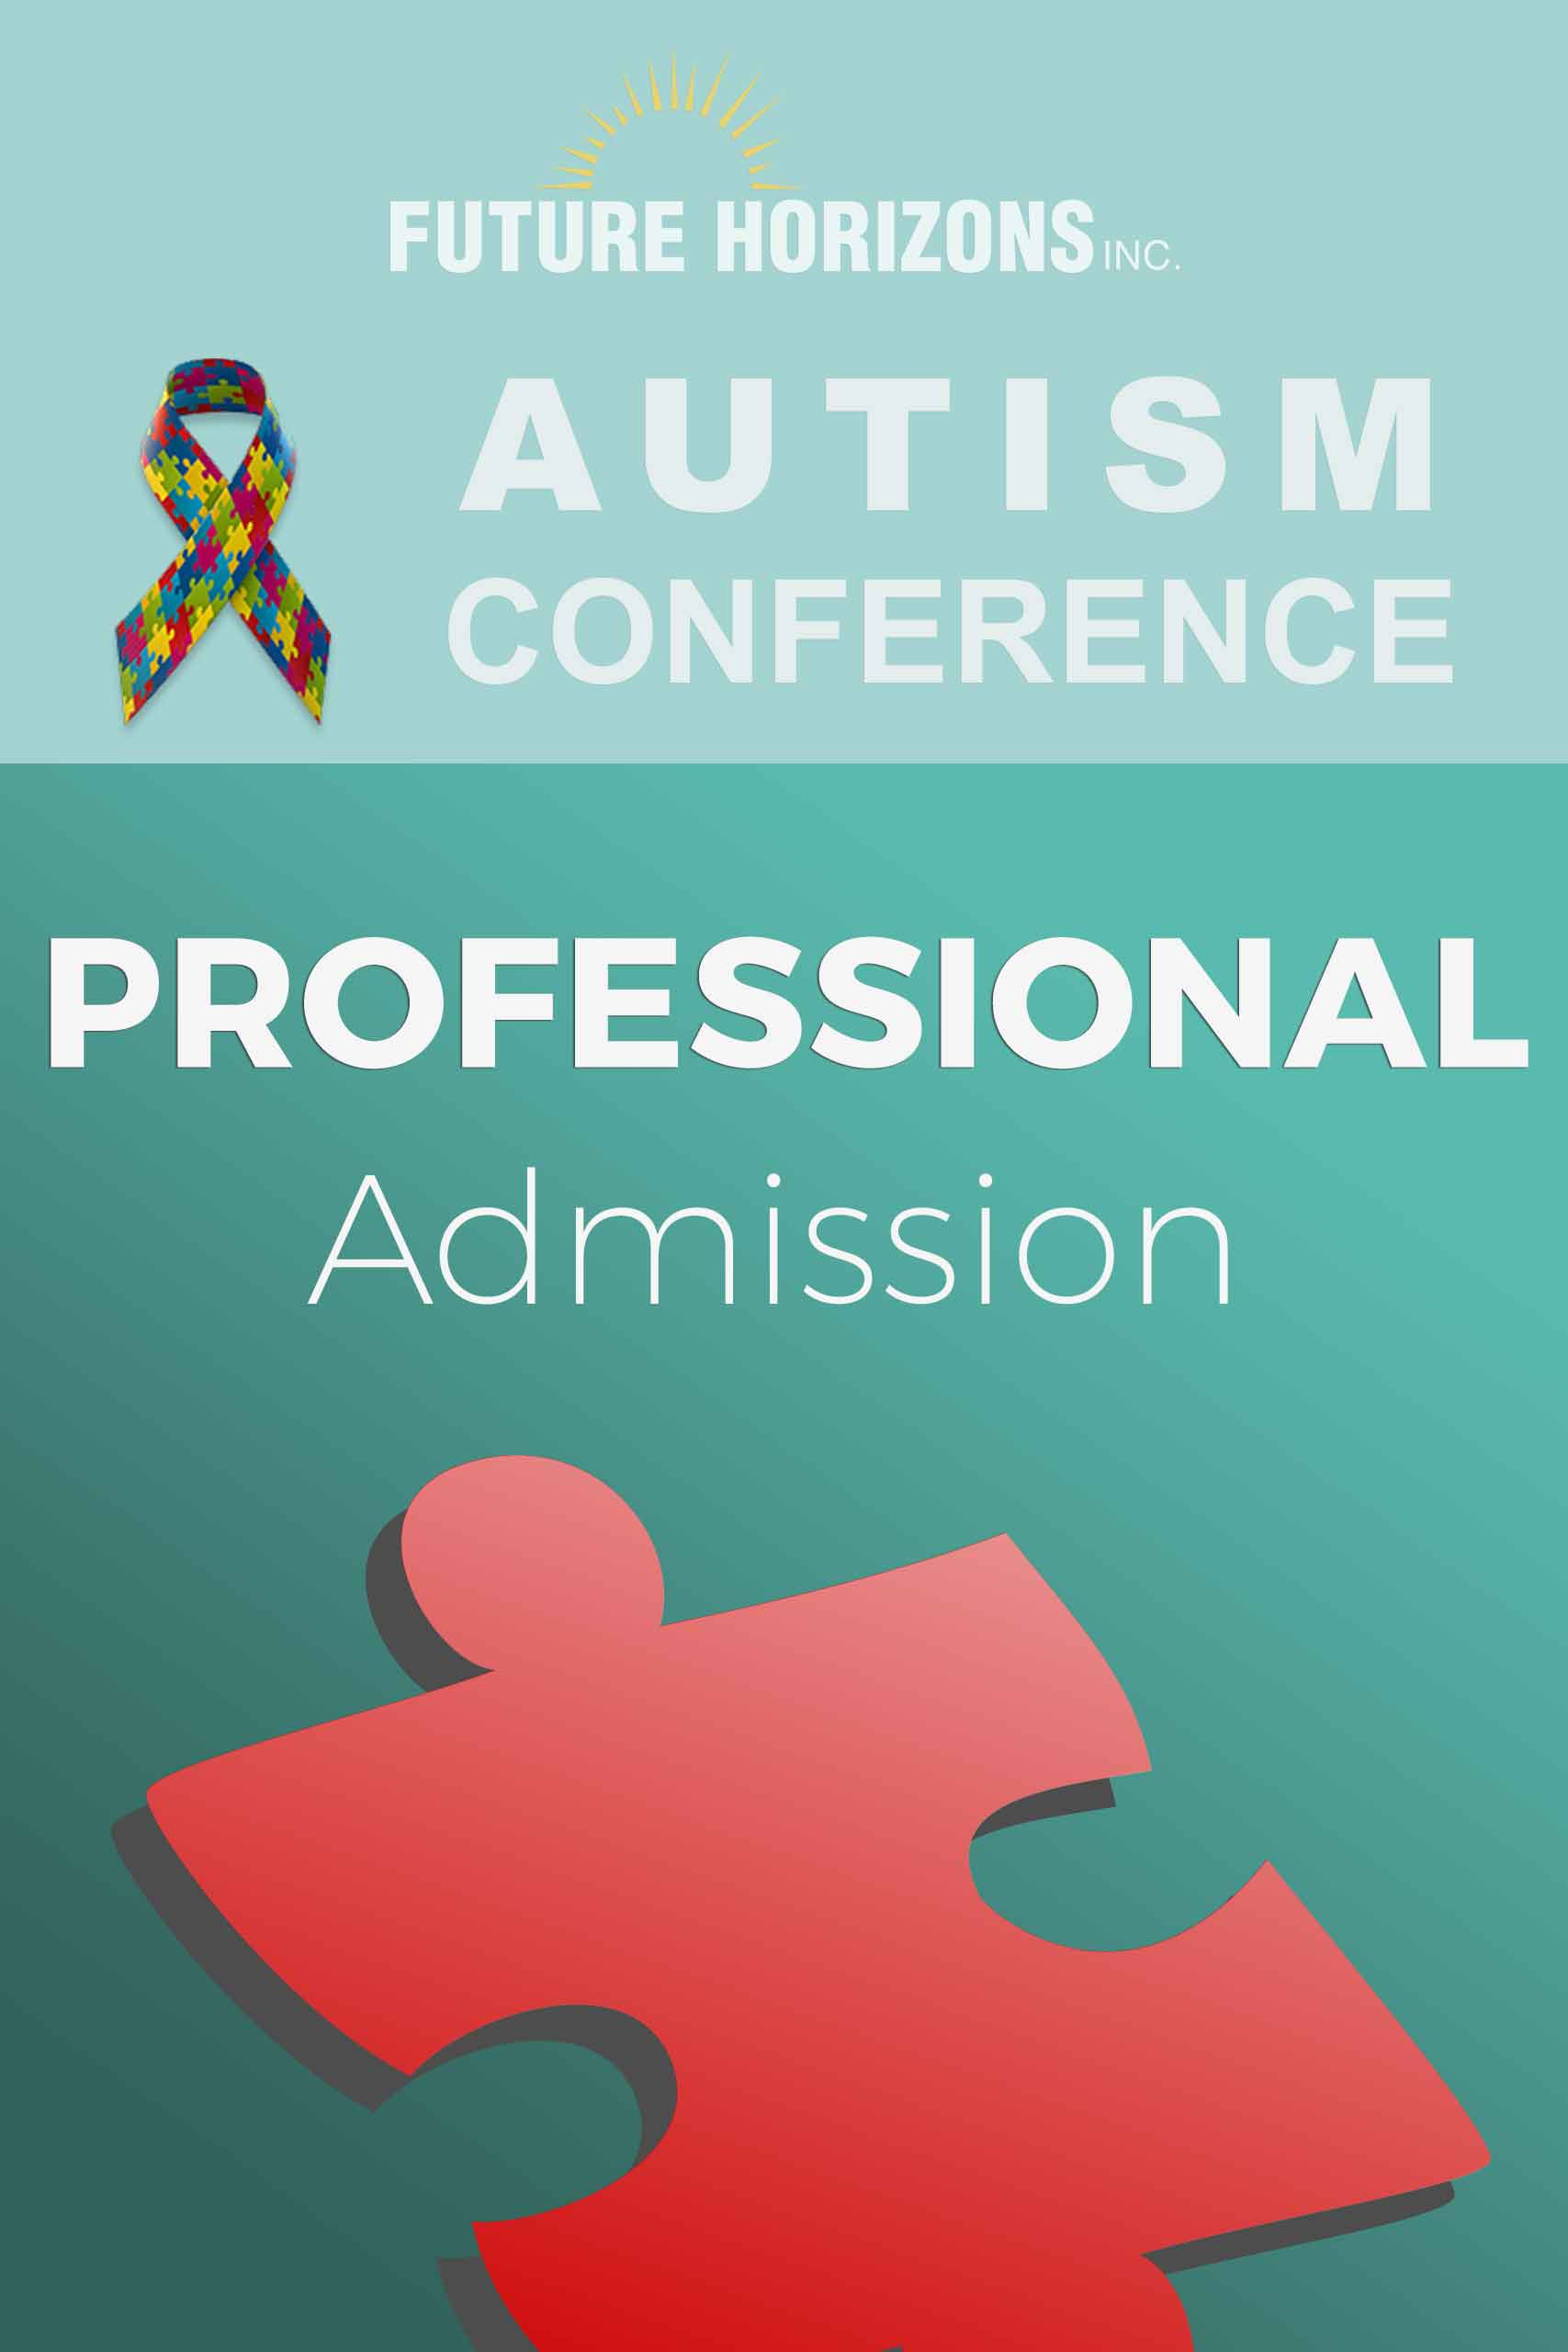 Register Now For Aspergerautism And >> Tickets And Registration For Nashville Autism Conference With Temple Grandin